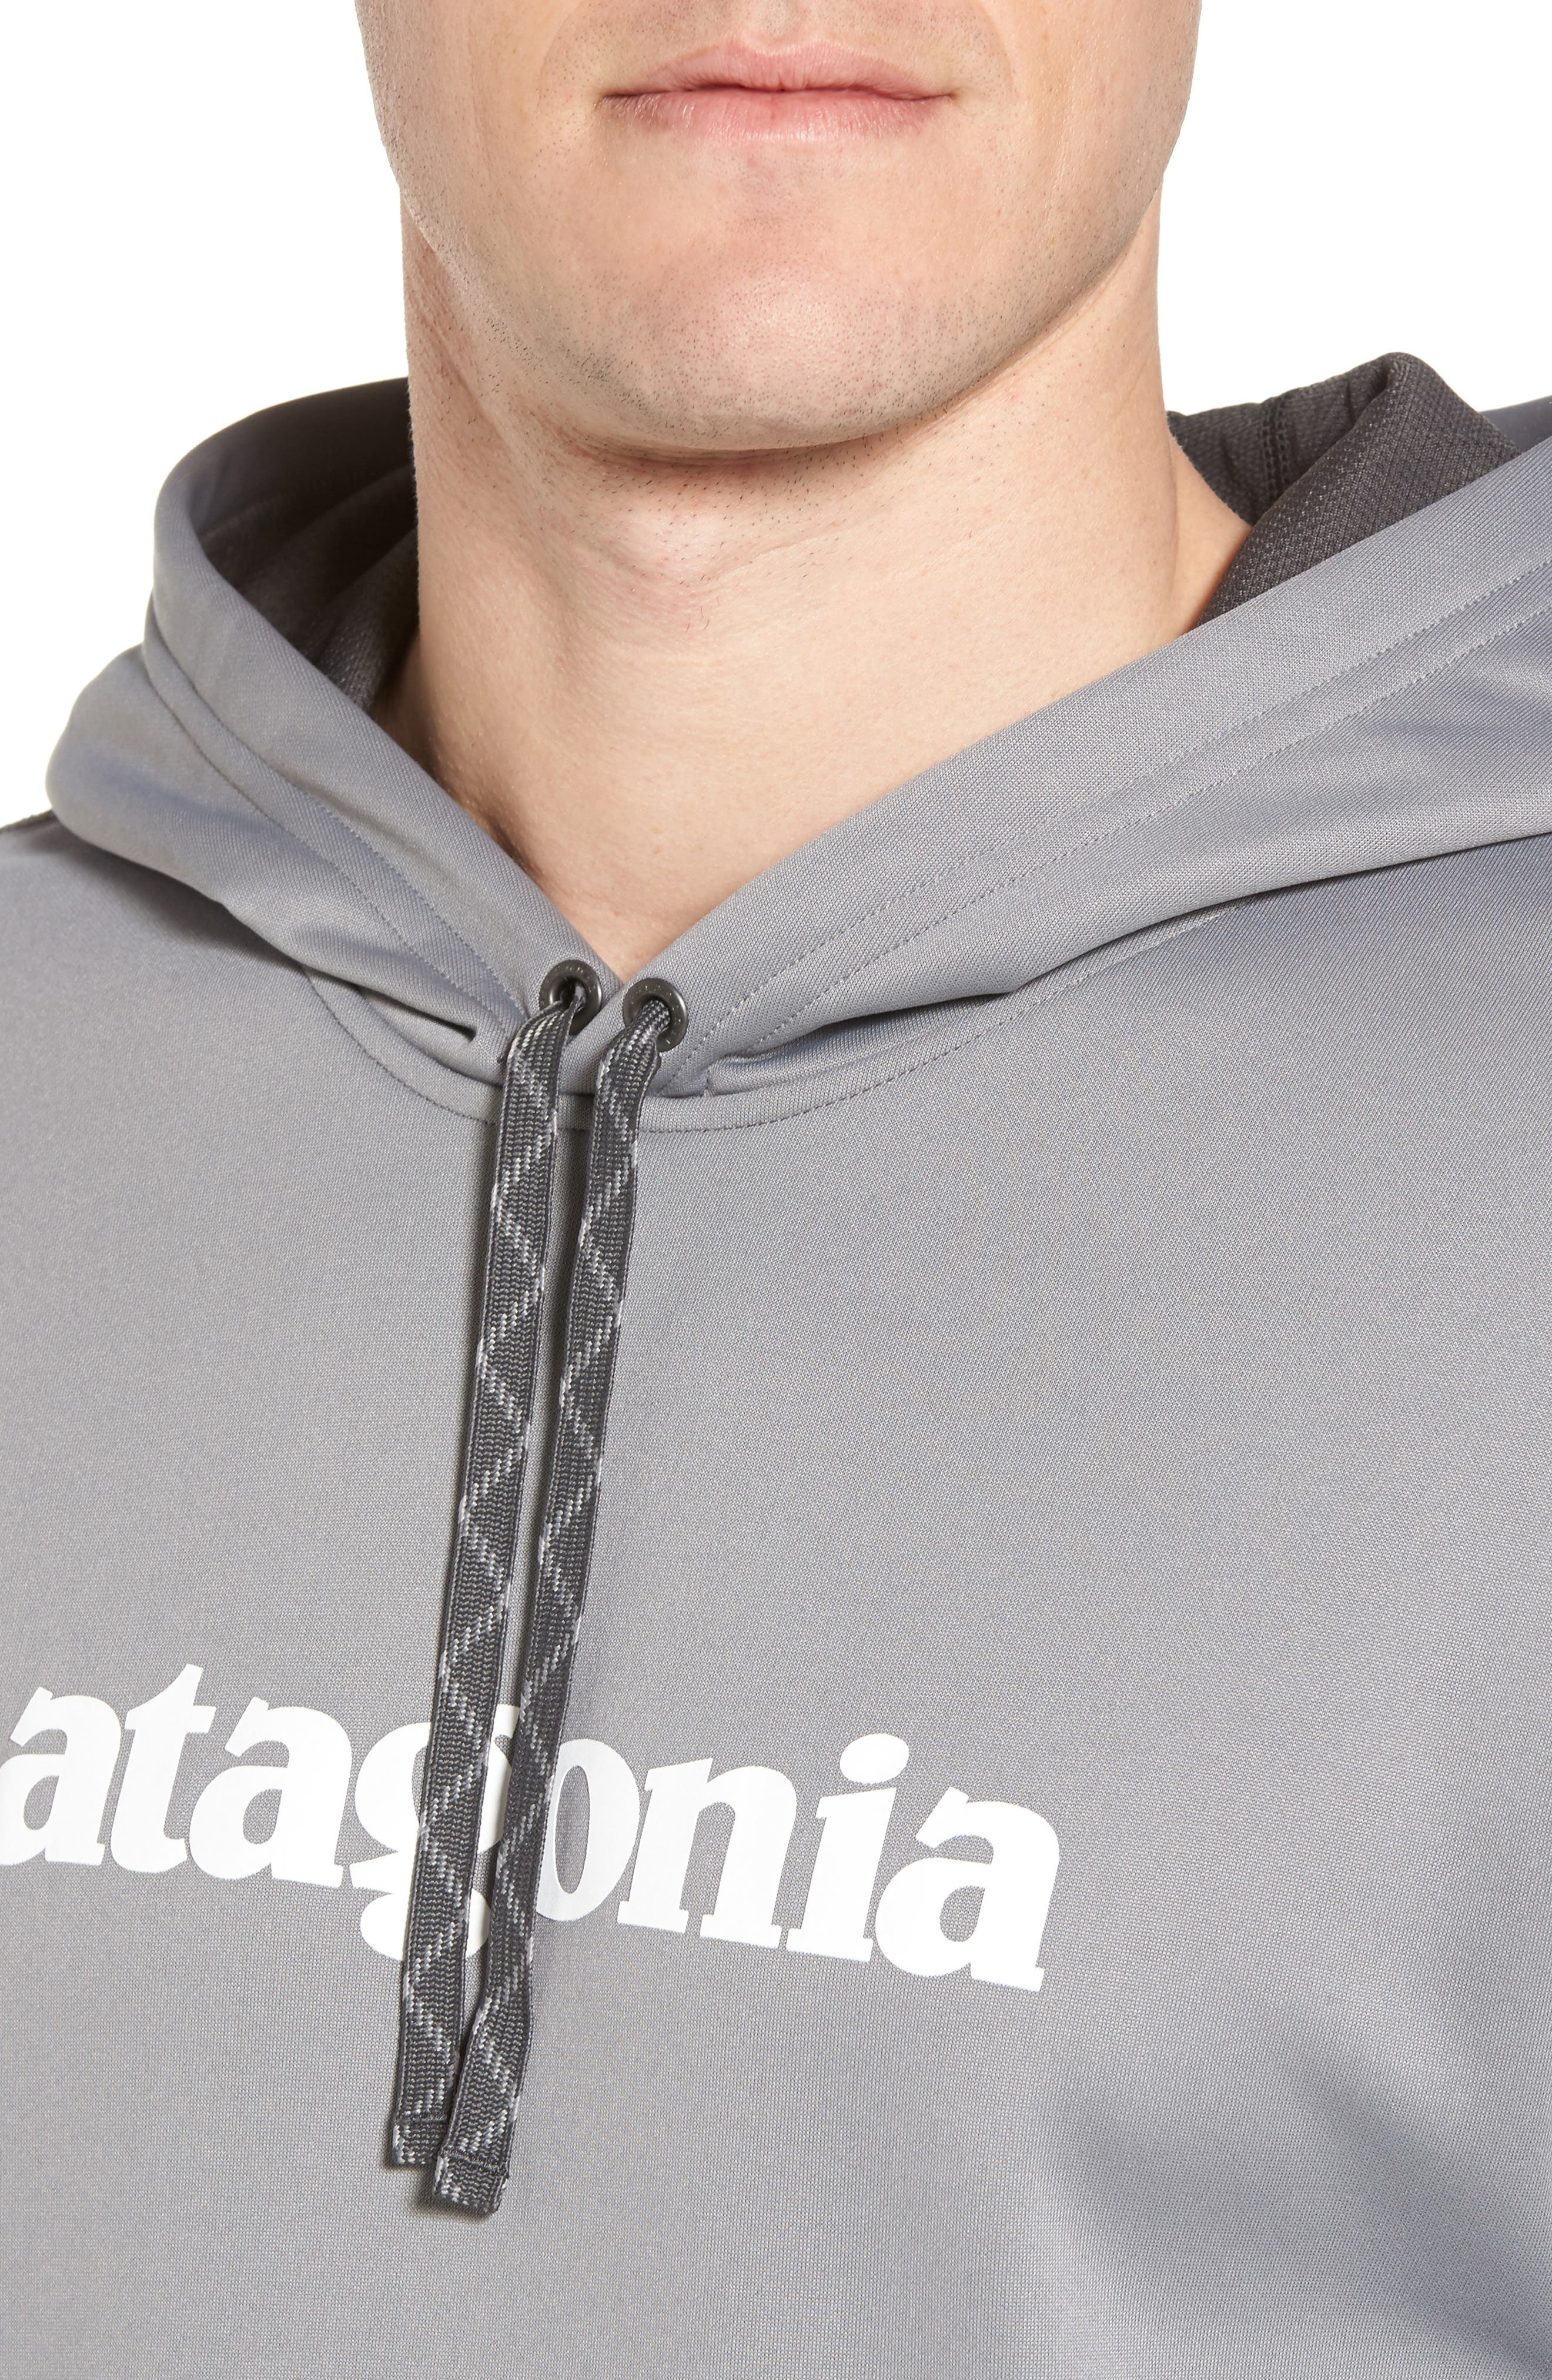 Polycycle Hoodie,                             Alternate thumbnail 4, color,                             Feather Grey/ White